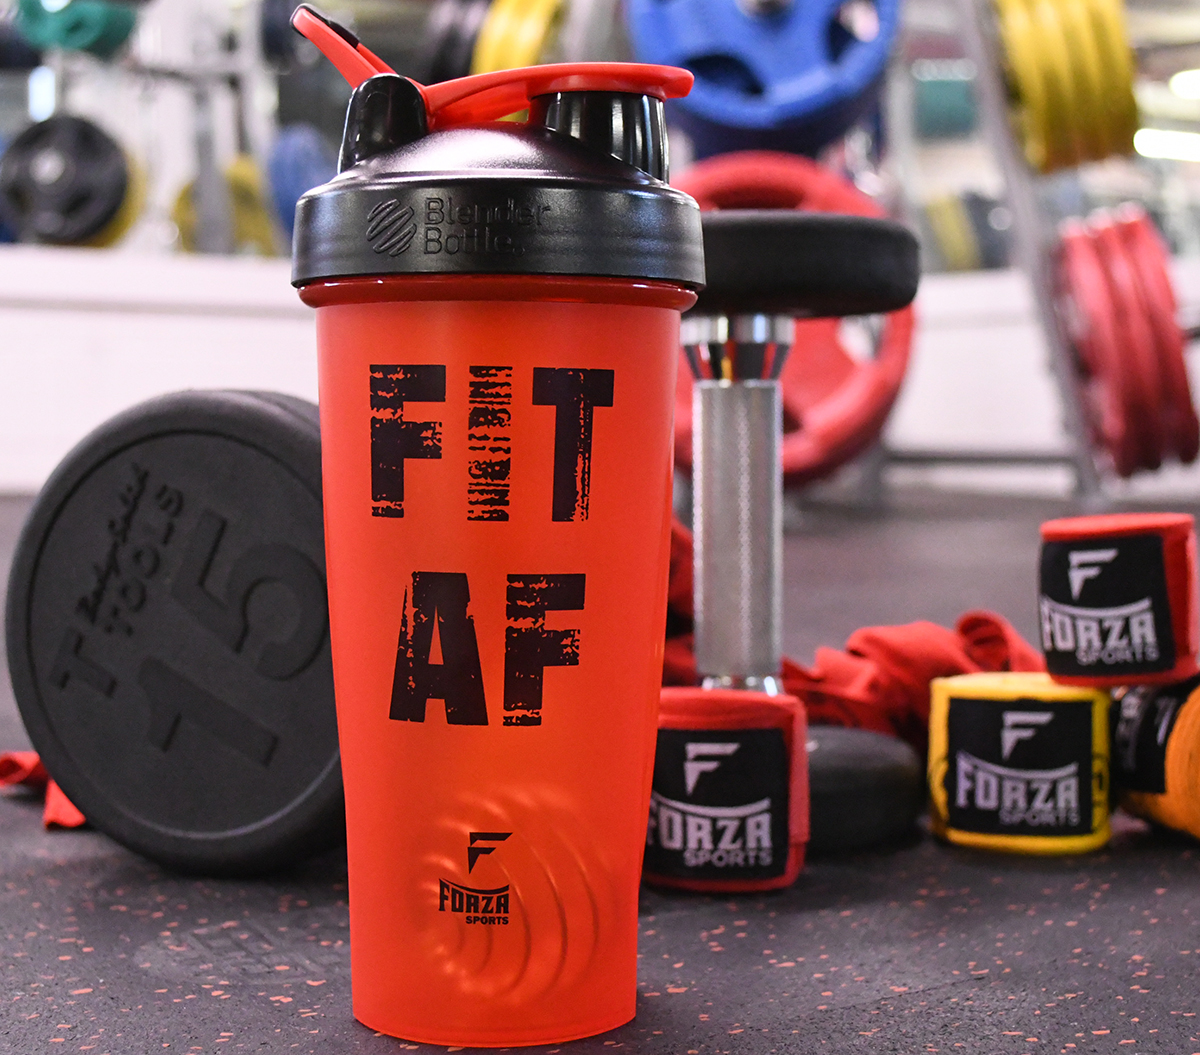 Blender-Bottle-x-Forza-Sports-Classic-28-oz-Shaker-Mixer-Cup-with-Loop-Top thumbnail 20